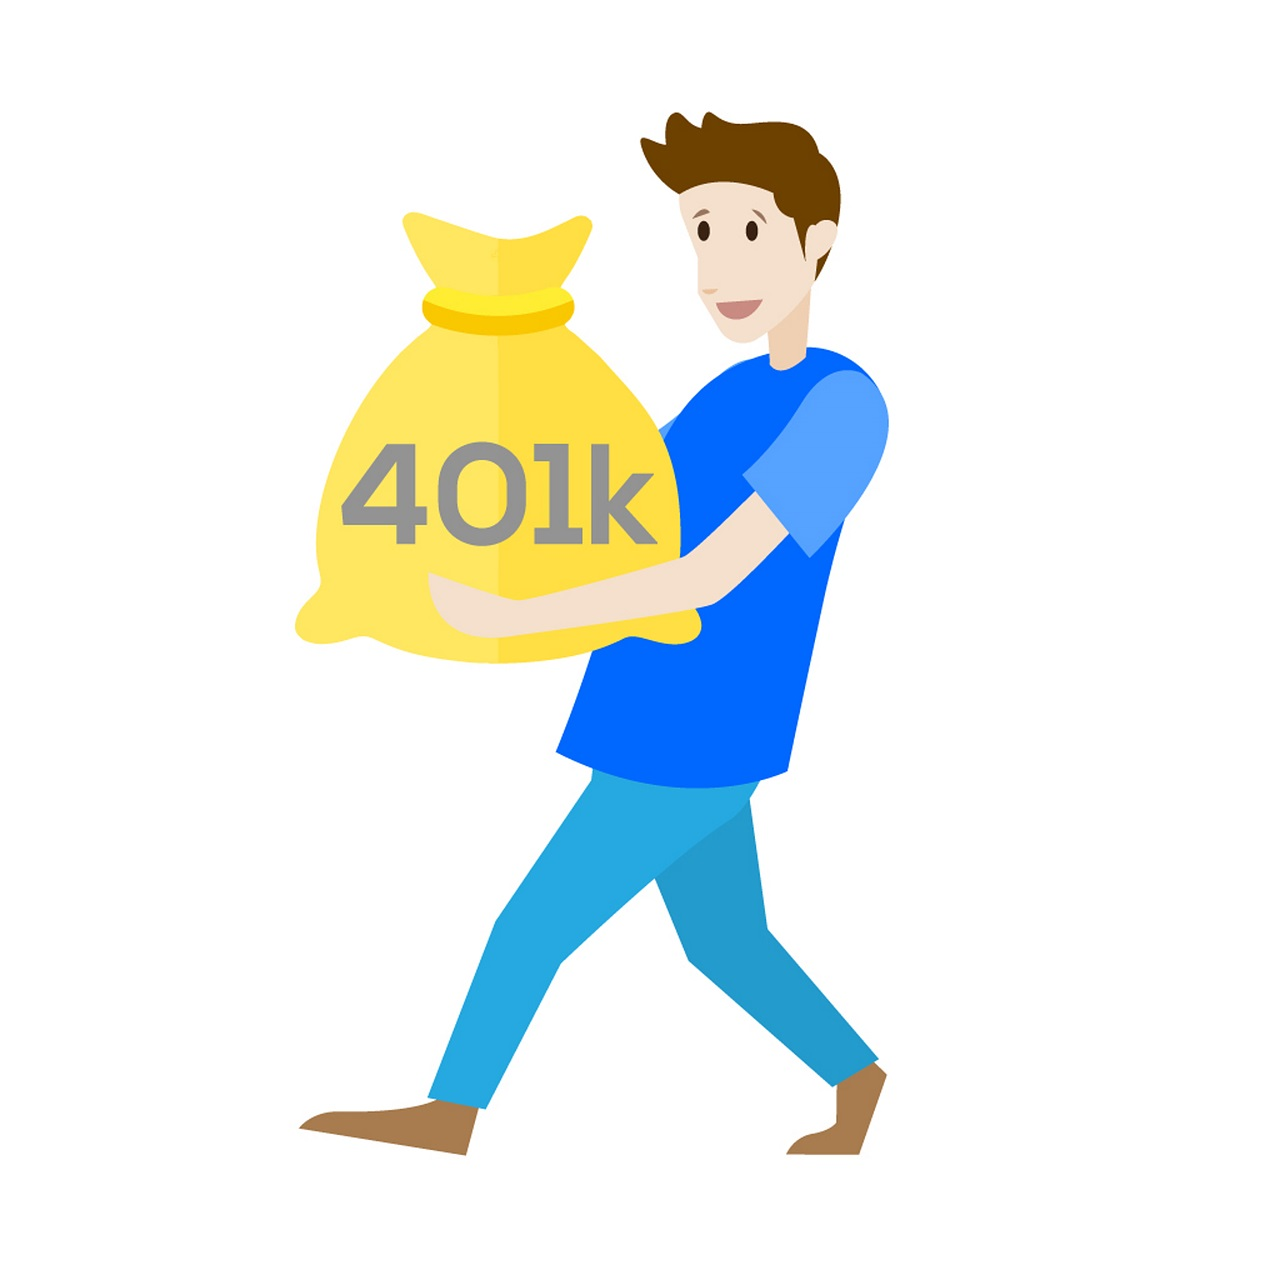 Get A 401k Retirement Account Today!